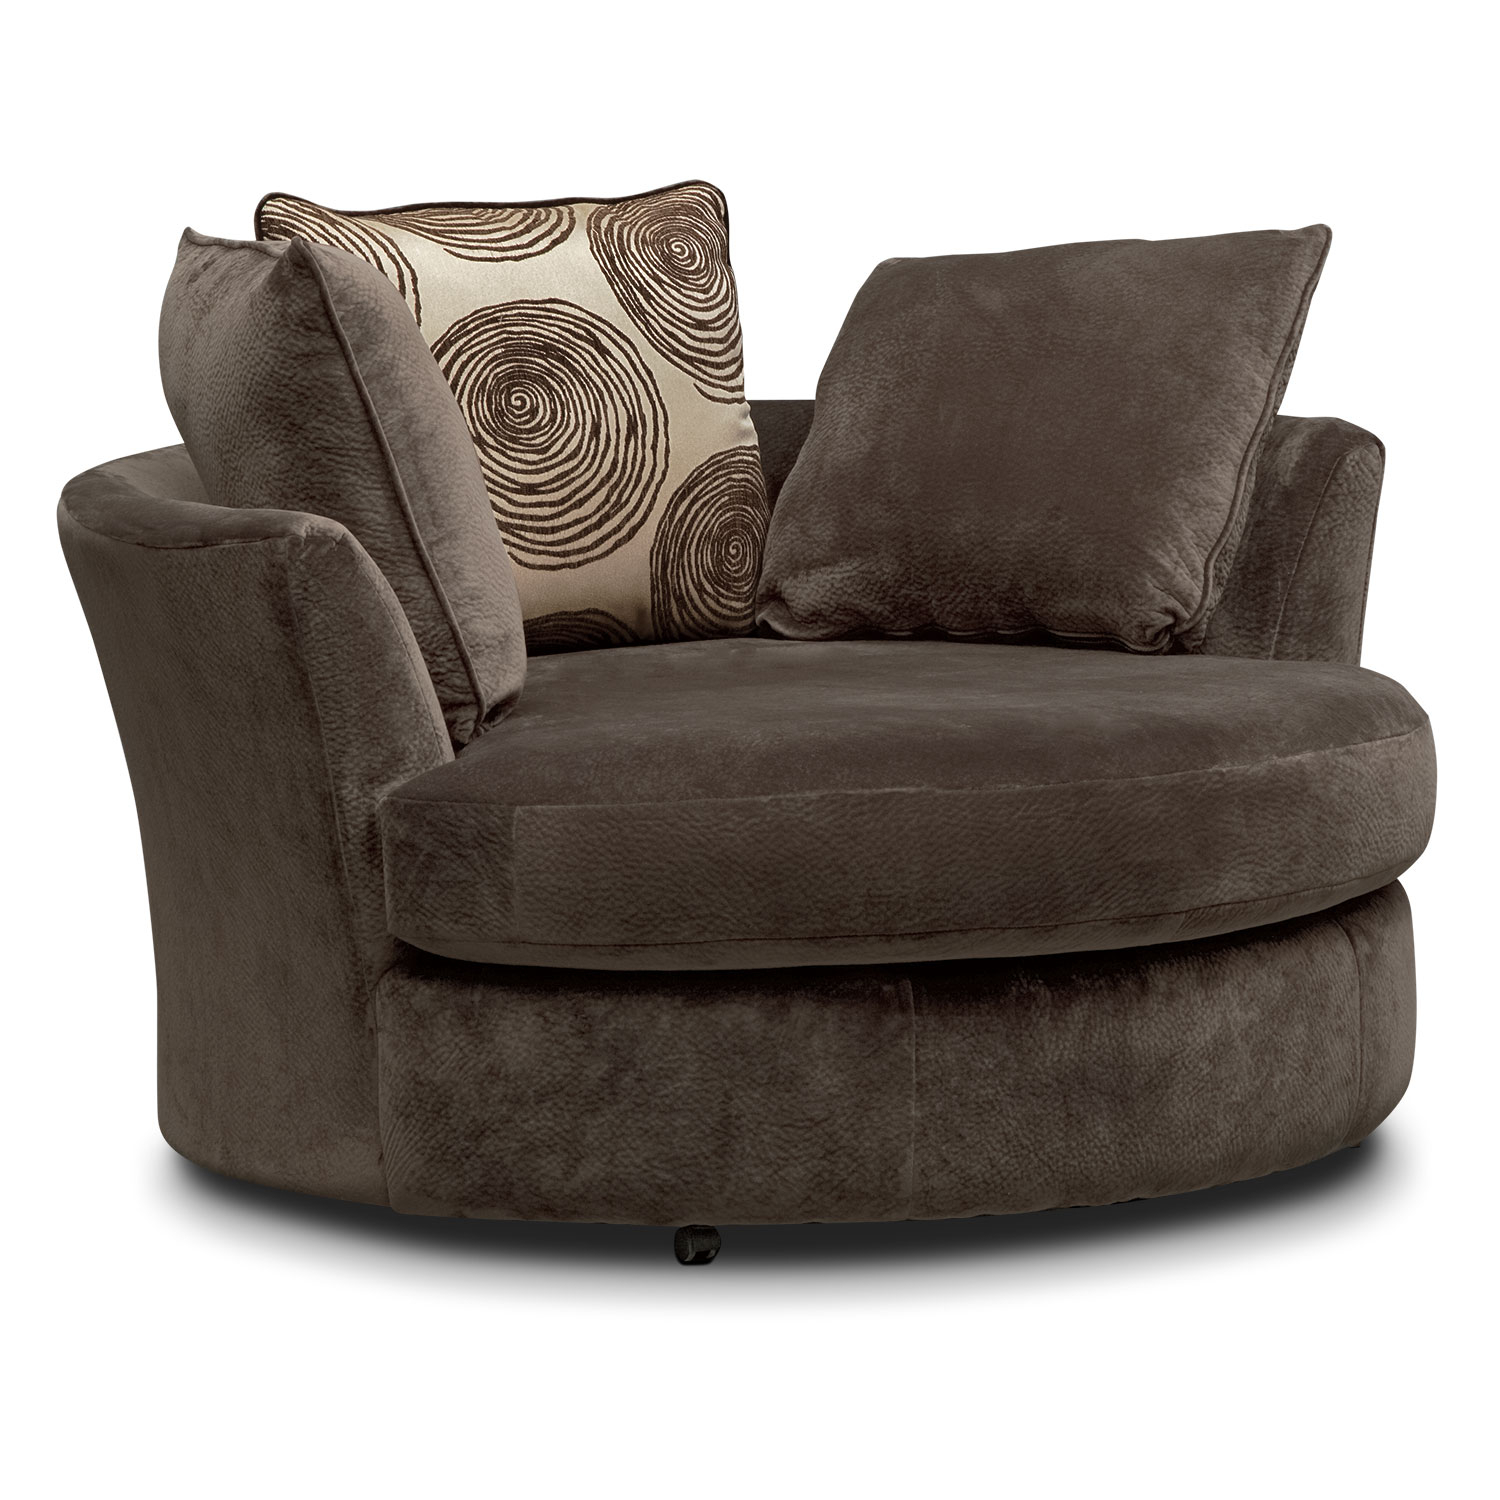 Cordelle Sofa, Loveseat And Swivel Chair Set | American Signature Inside Chocolate Brown Leather Tufted Swivel Chairs (View 22 of 25)